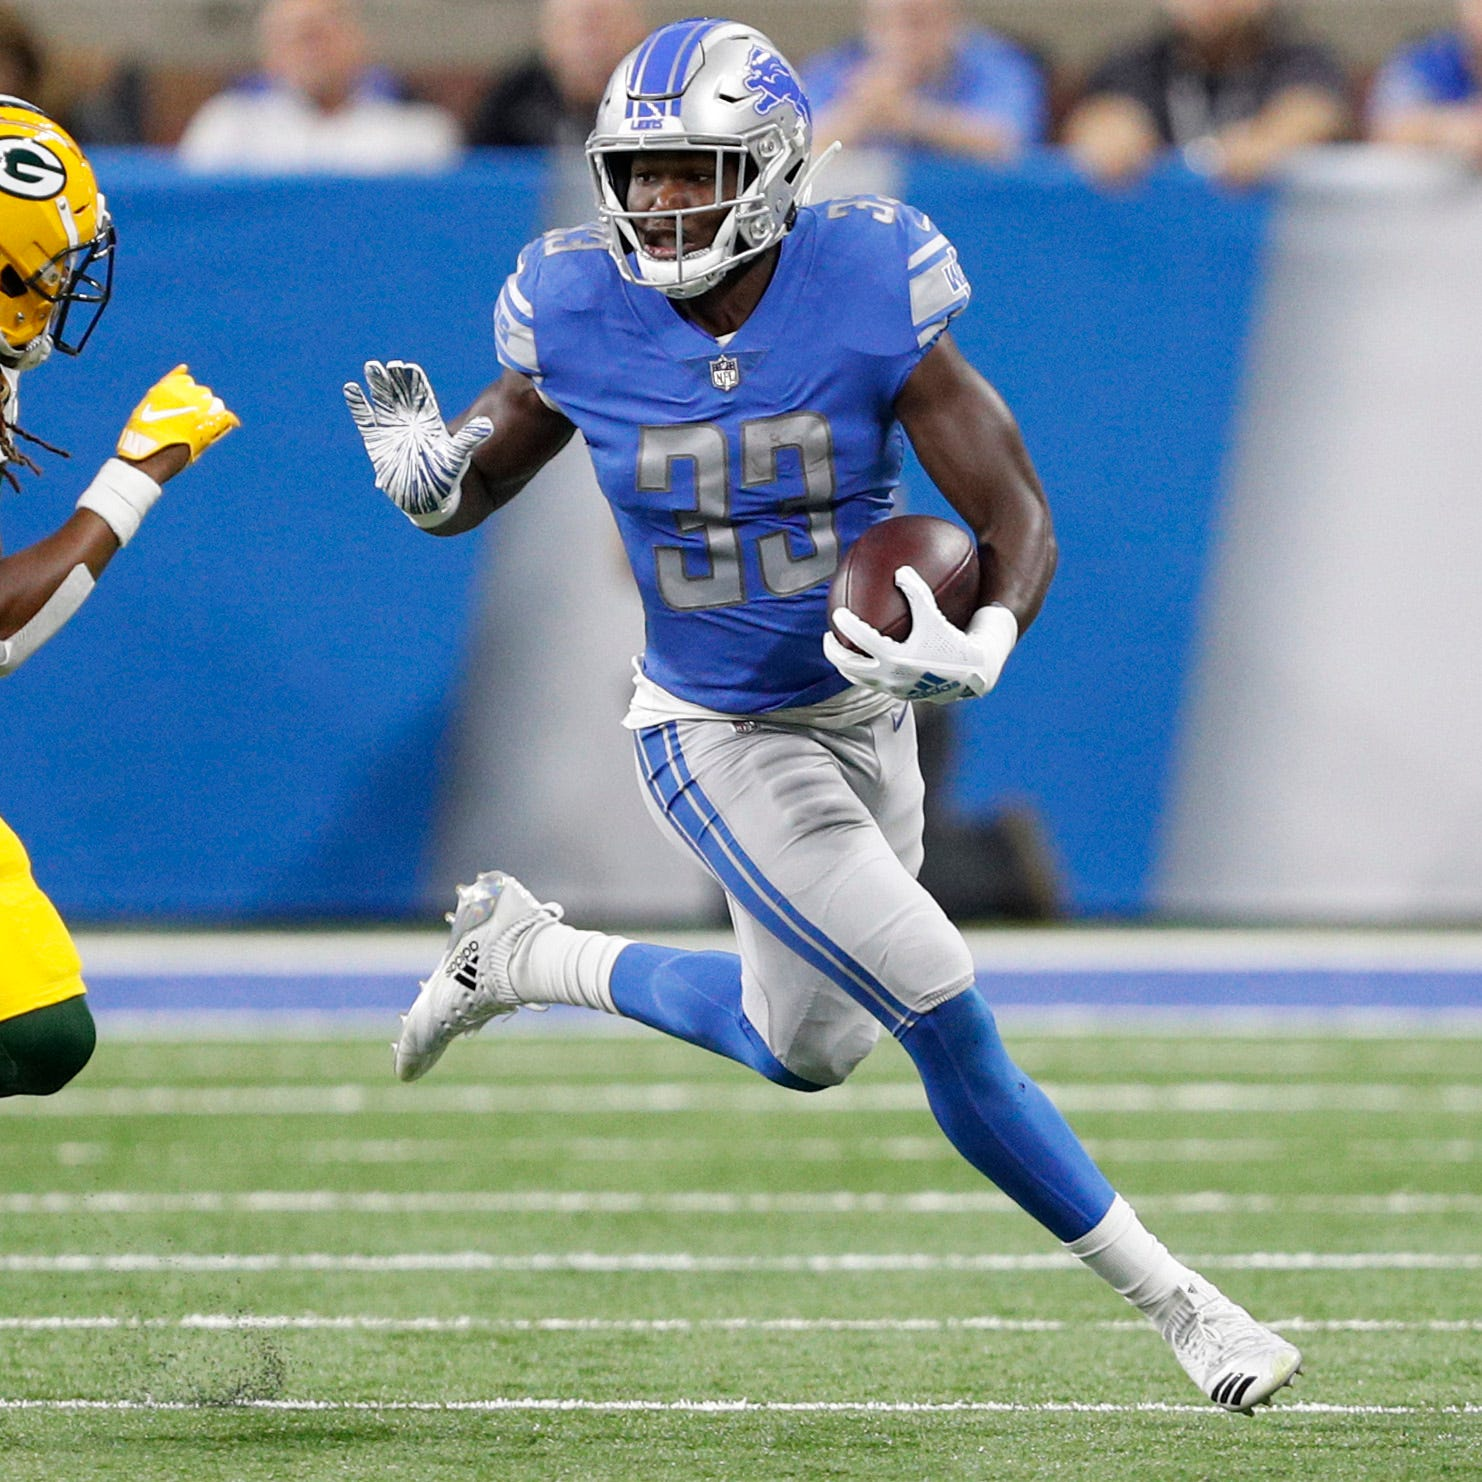 Detroit Lions vs. Miami Dolphins: Scouting report and prediction